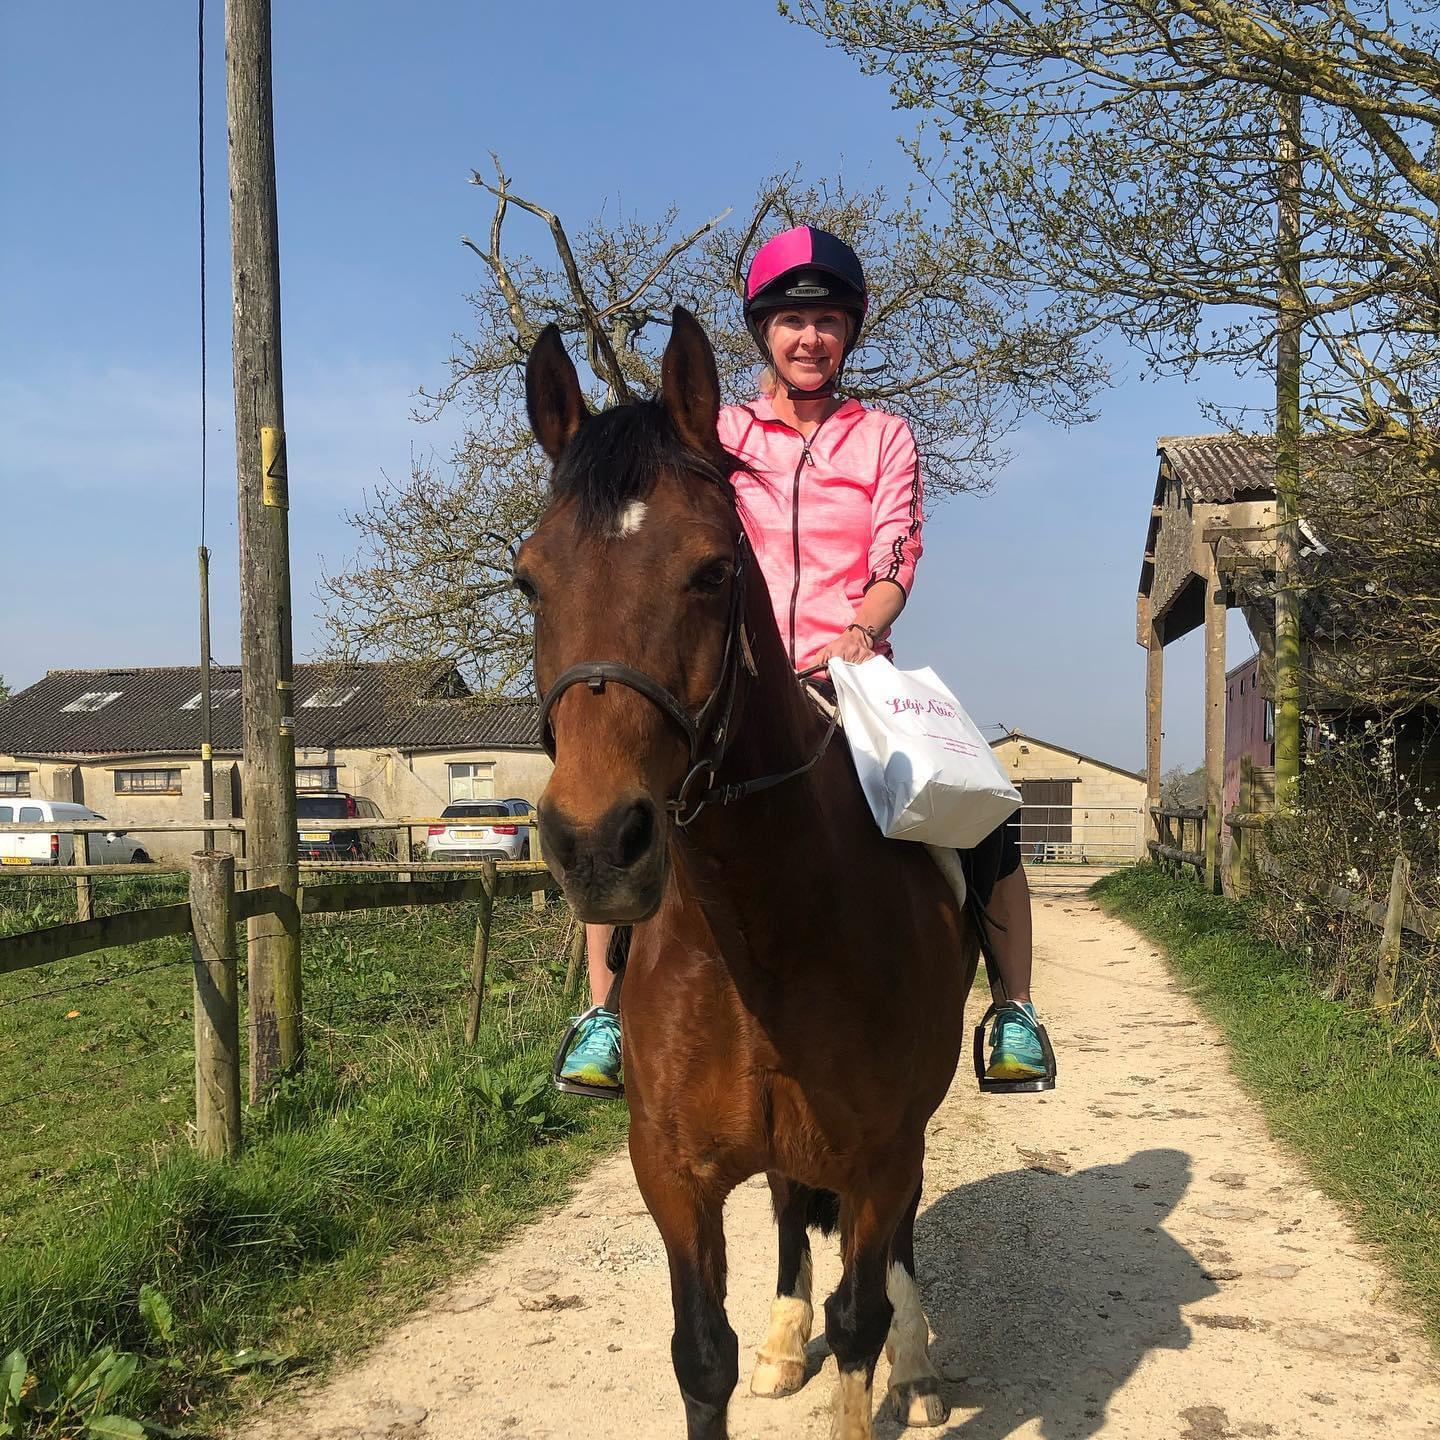 Above: Tamsin Butler, owner of Lily's Attic in Witney, is pictured on her horse Boswell, delivering orders to her customers.